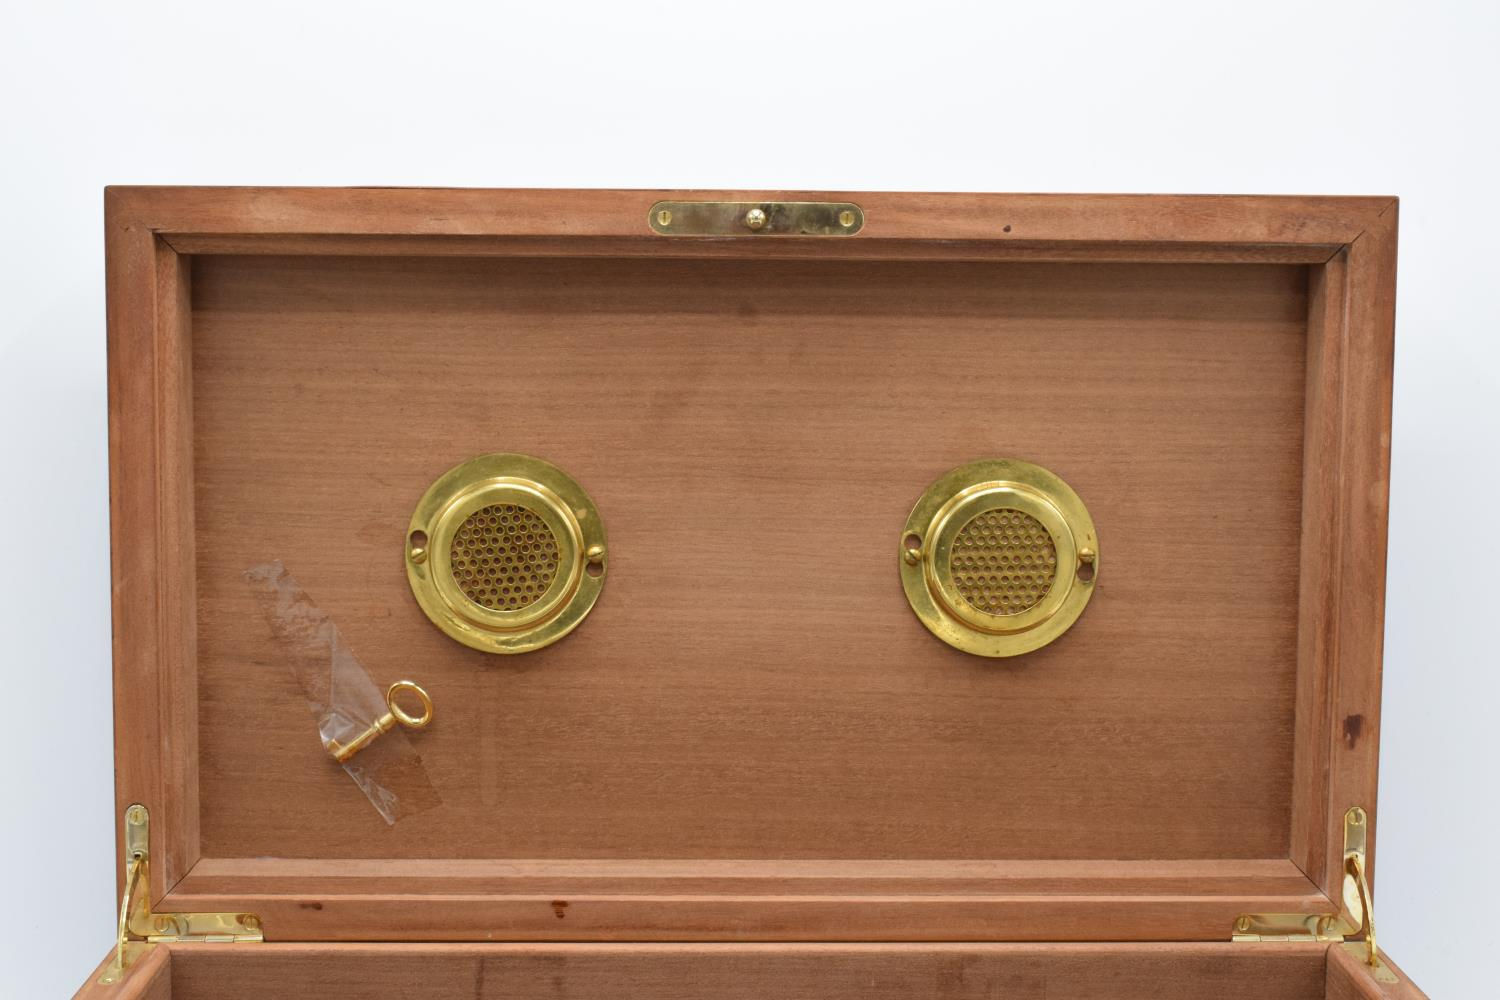 A modern veneered wooden cigar humidor with brass fixtures and fitting with a working lock and - Image 3 of 7